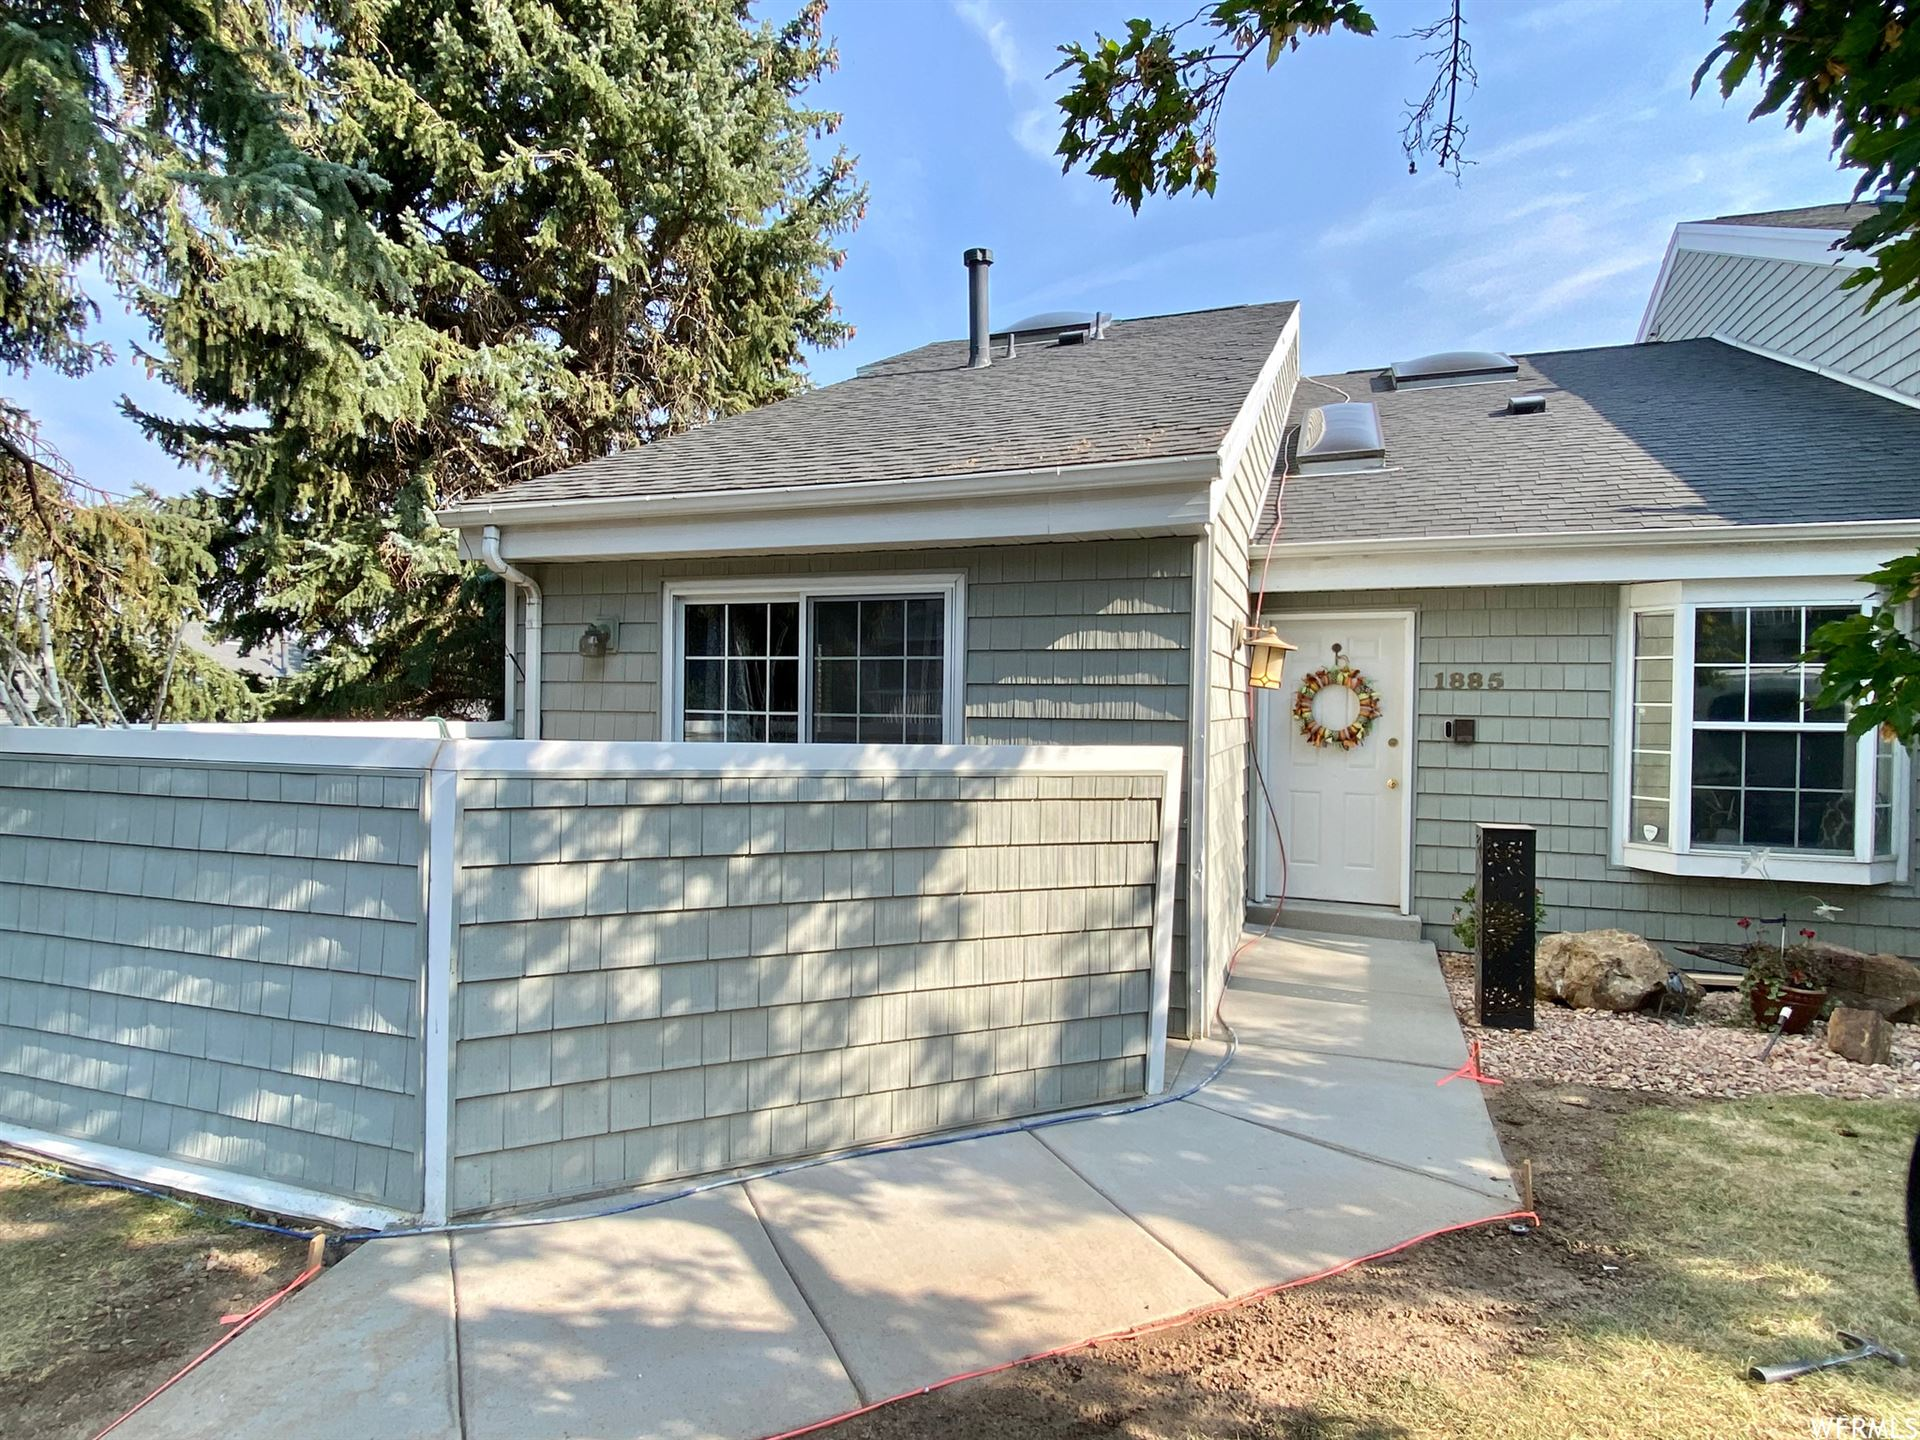 Photo of 1885 S HIGH POINTE E DR #10, Bountiful, UT 84010 (MLS # 1767217)